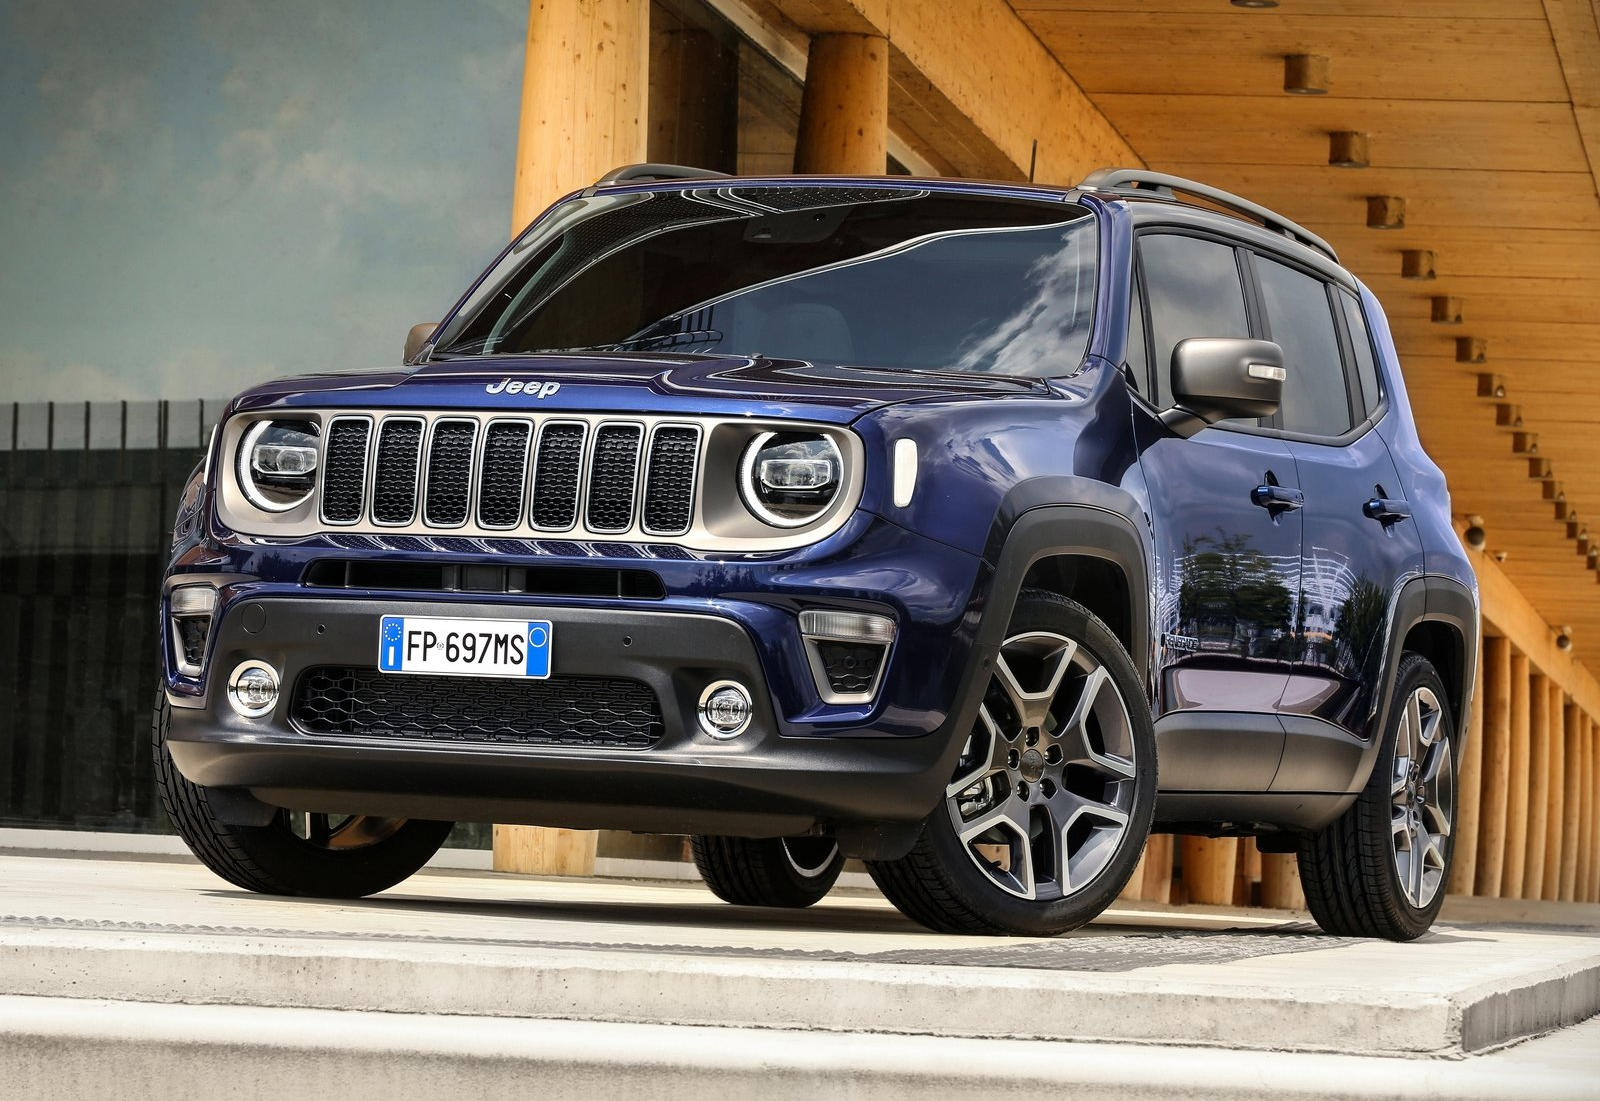 2020 Jeep Renegade Review Trims Specs Price New Interior Features Exterior Design And Specifications Carbuzz